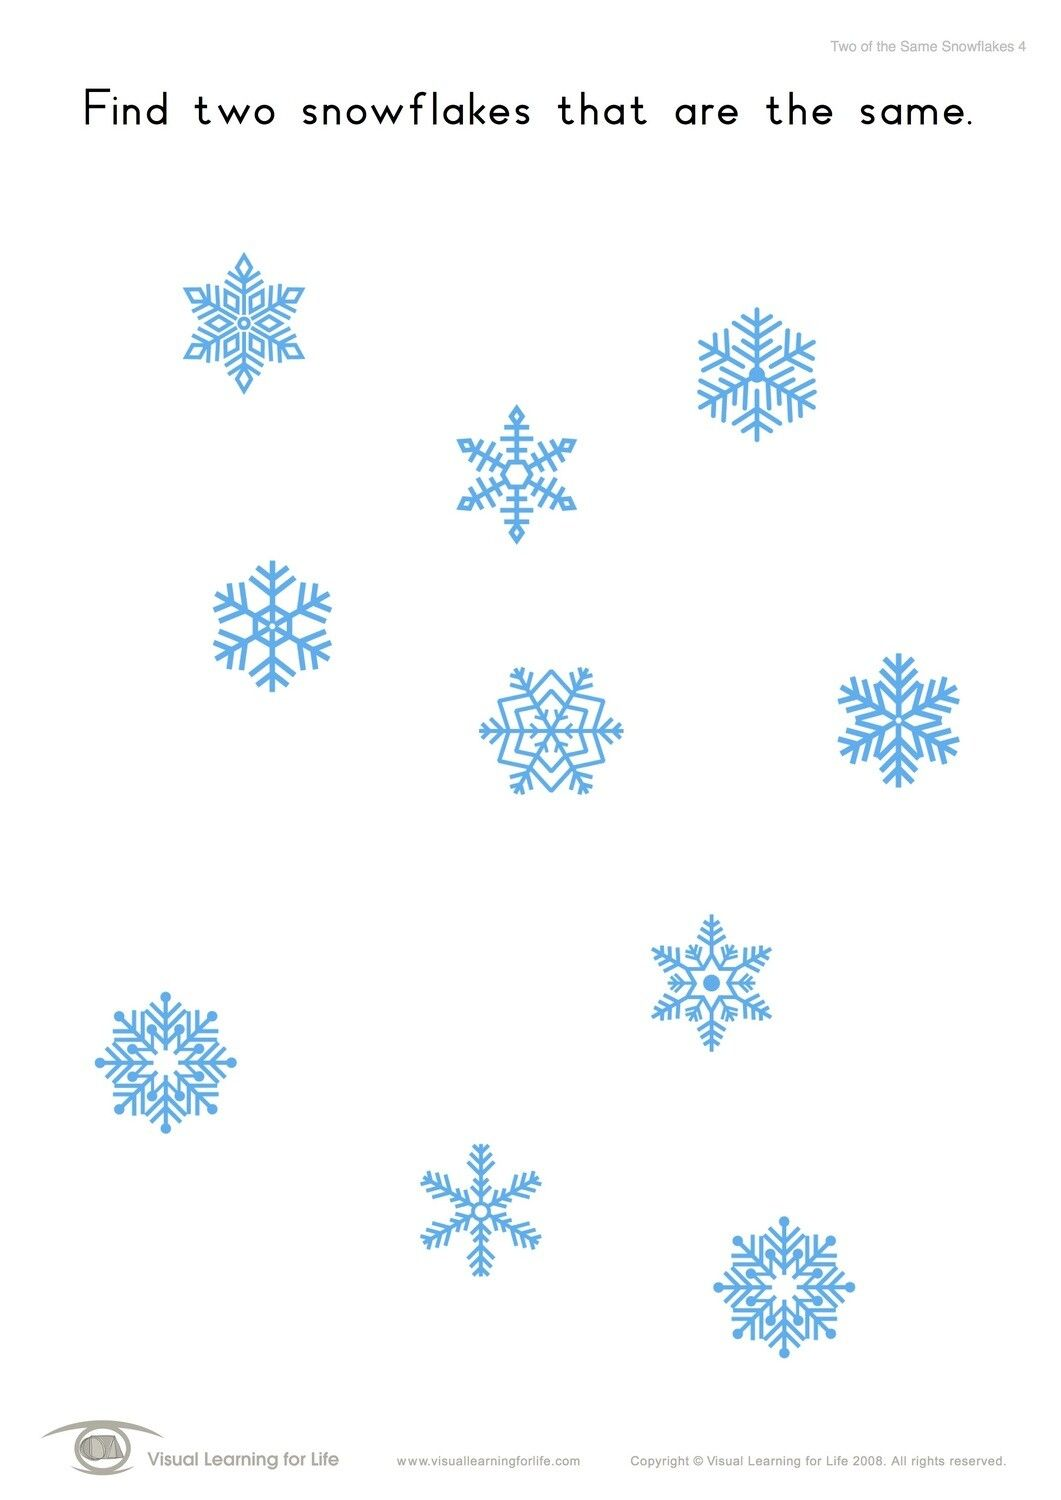 In The Two Of The Same Snowflakes Worksheets The